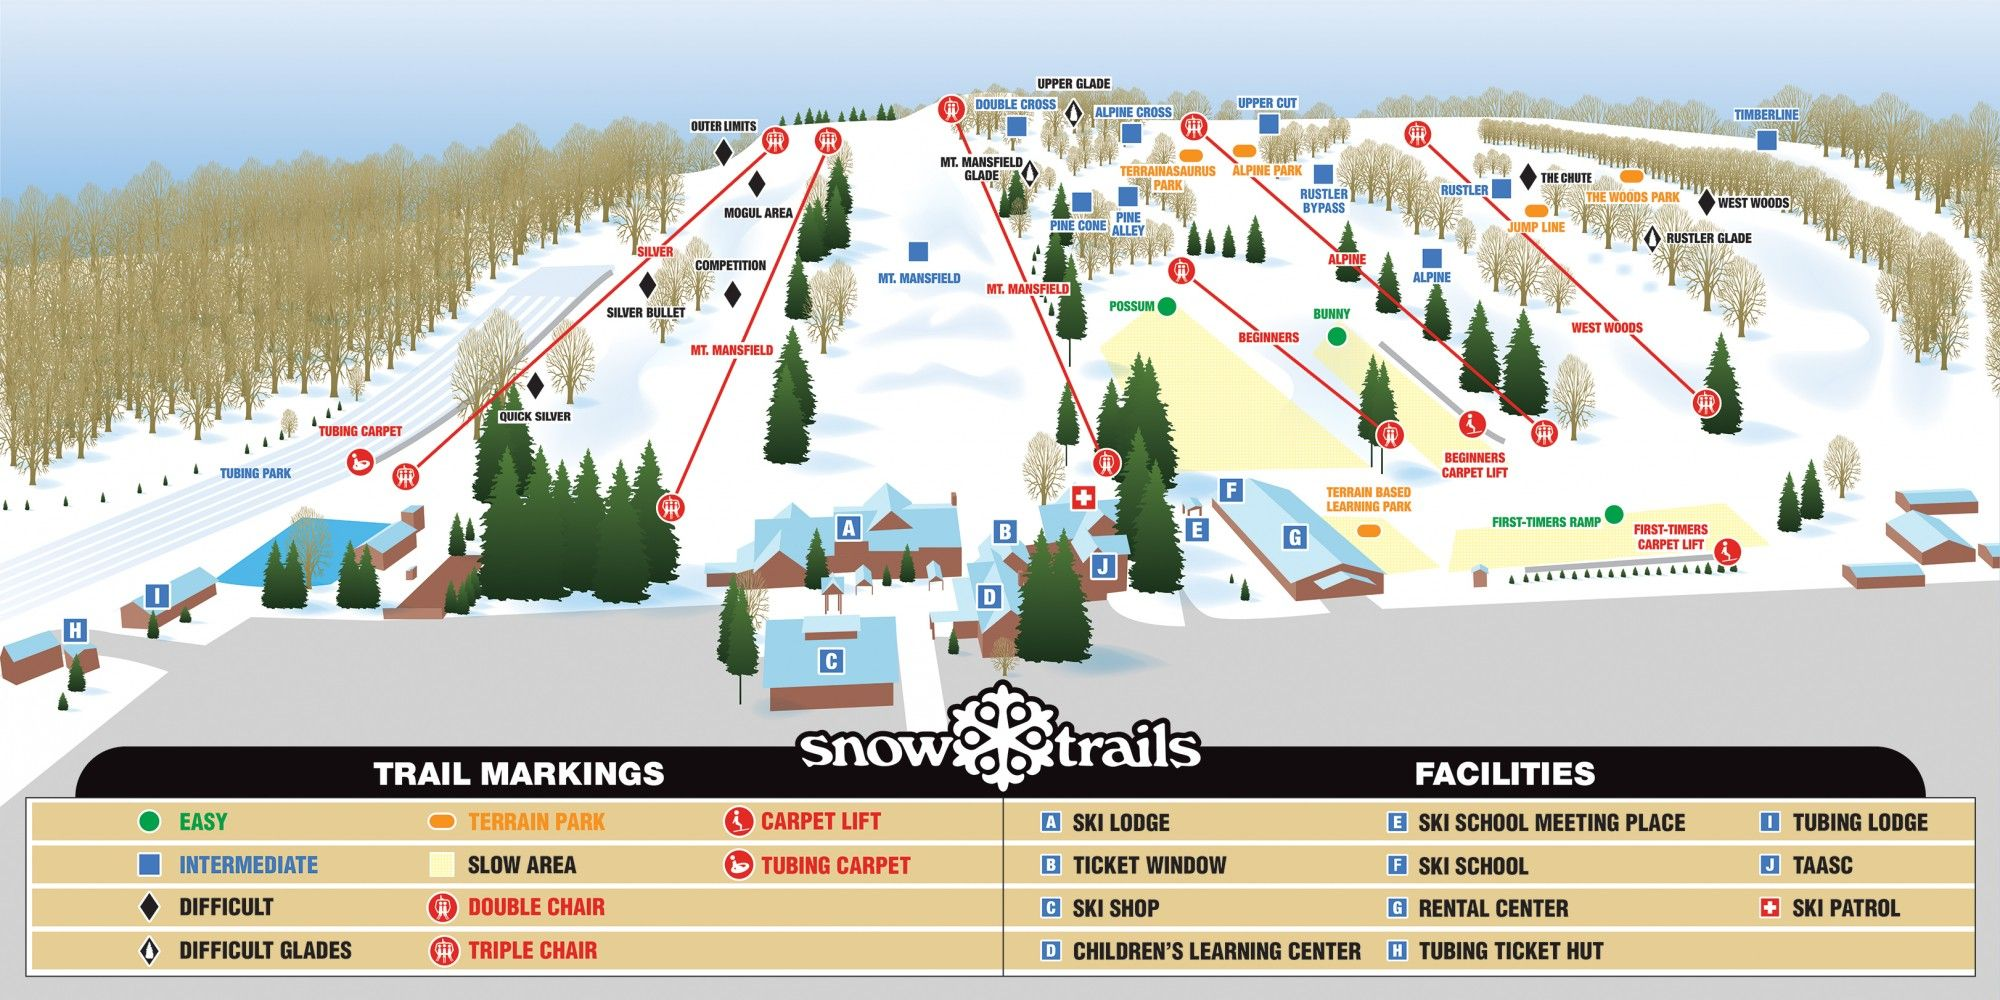 Snow Trails Map 2020-21